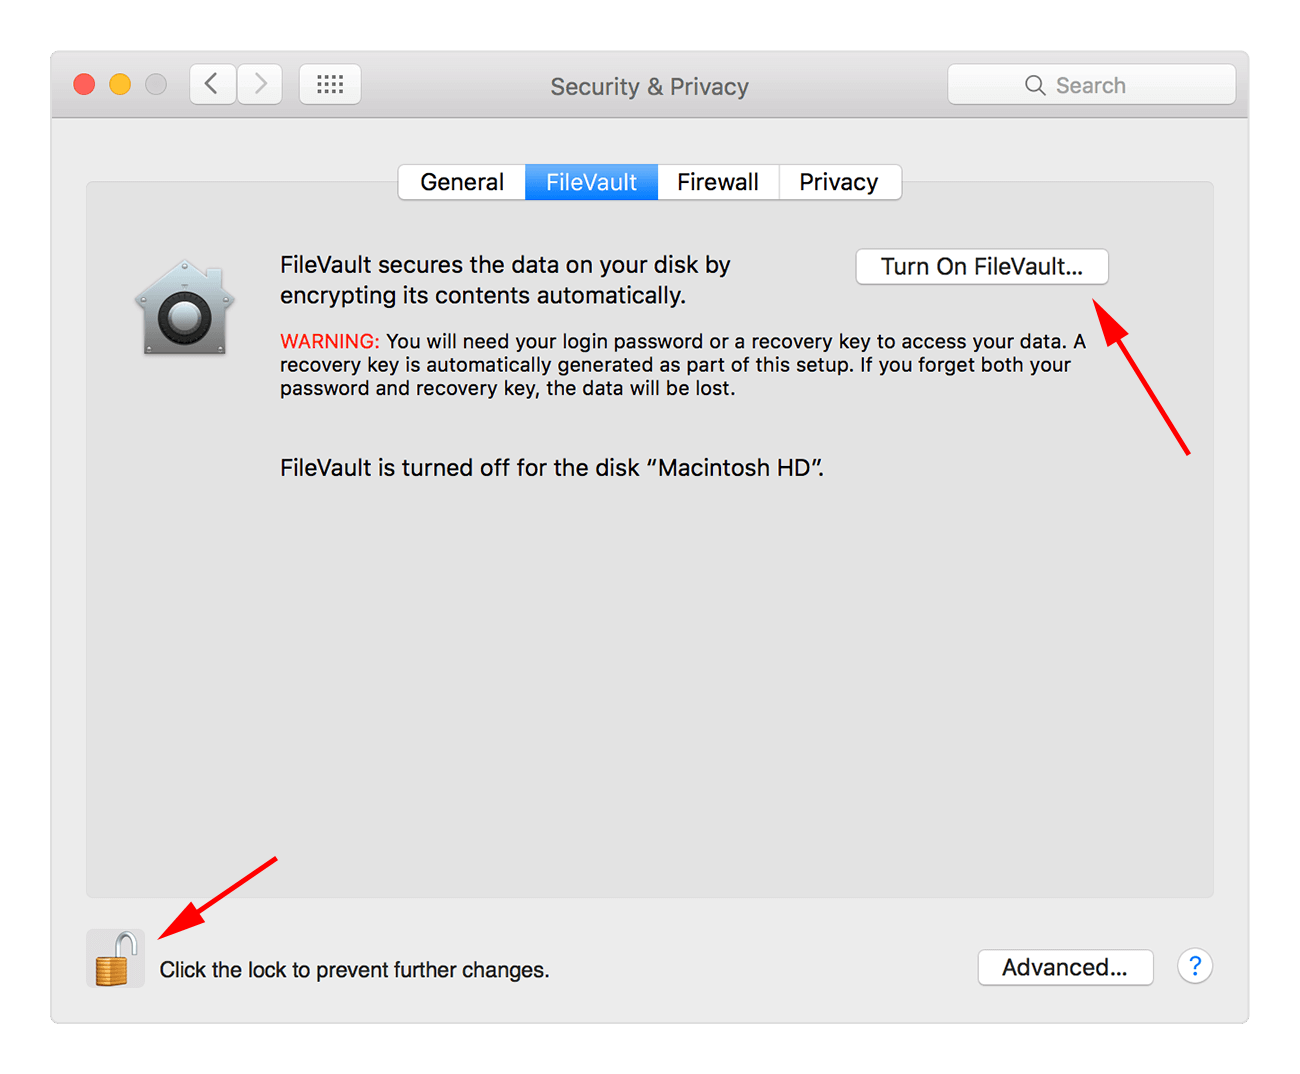 How to turn on FileVault